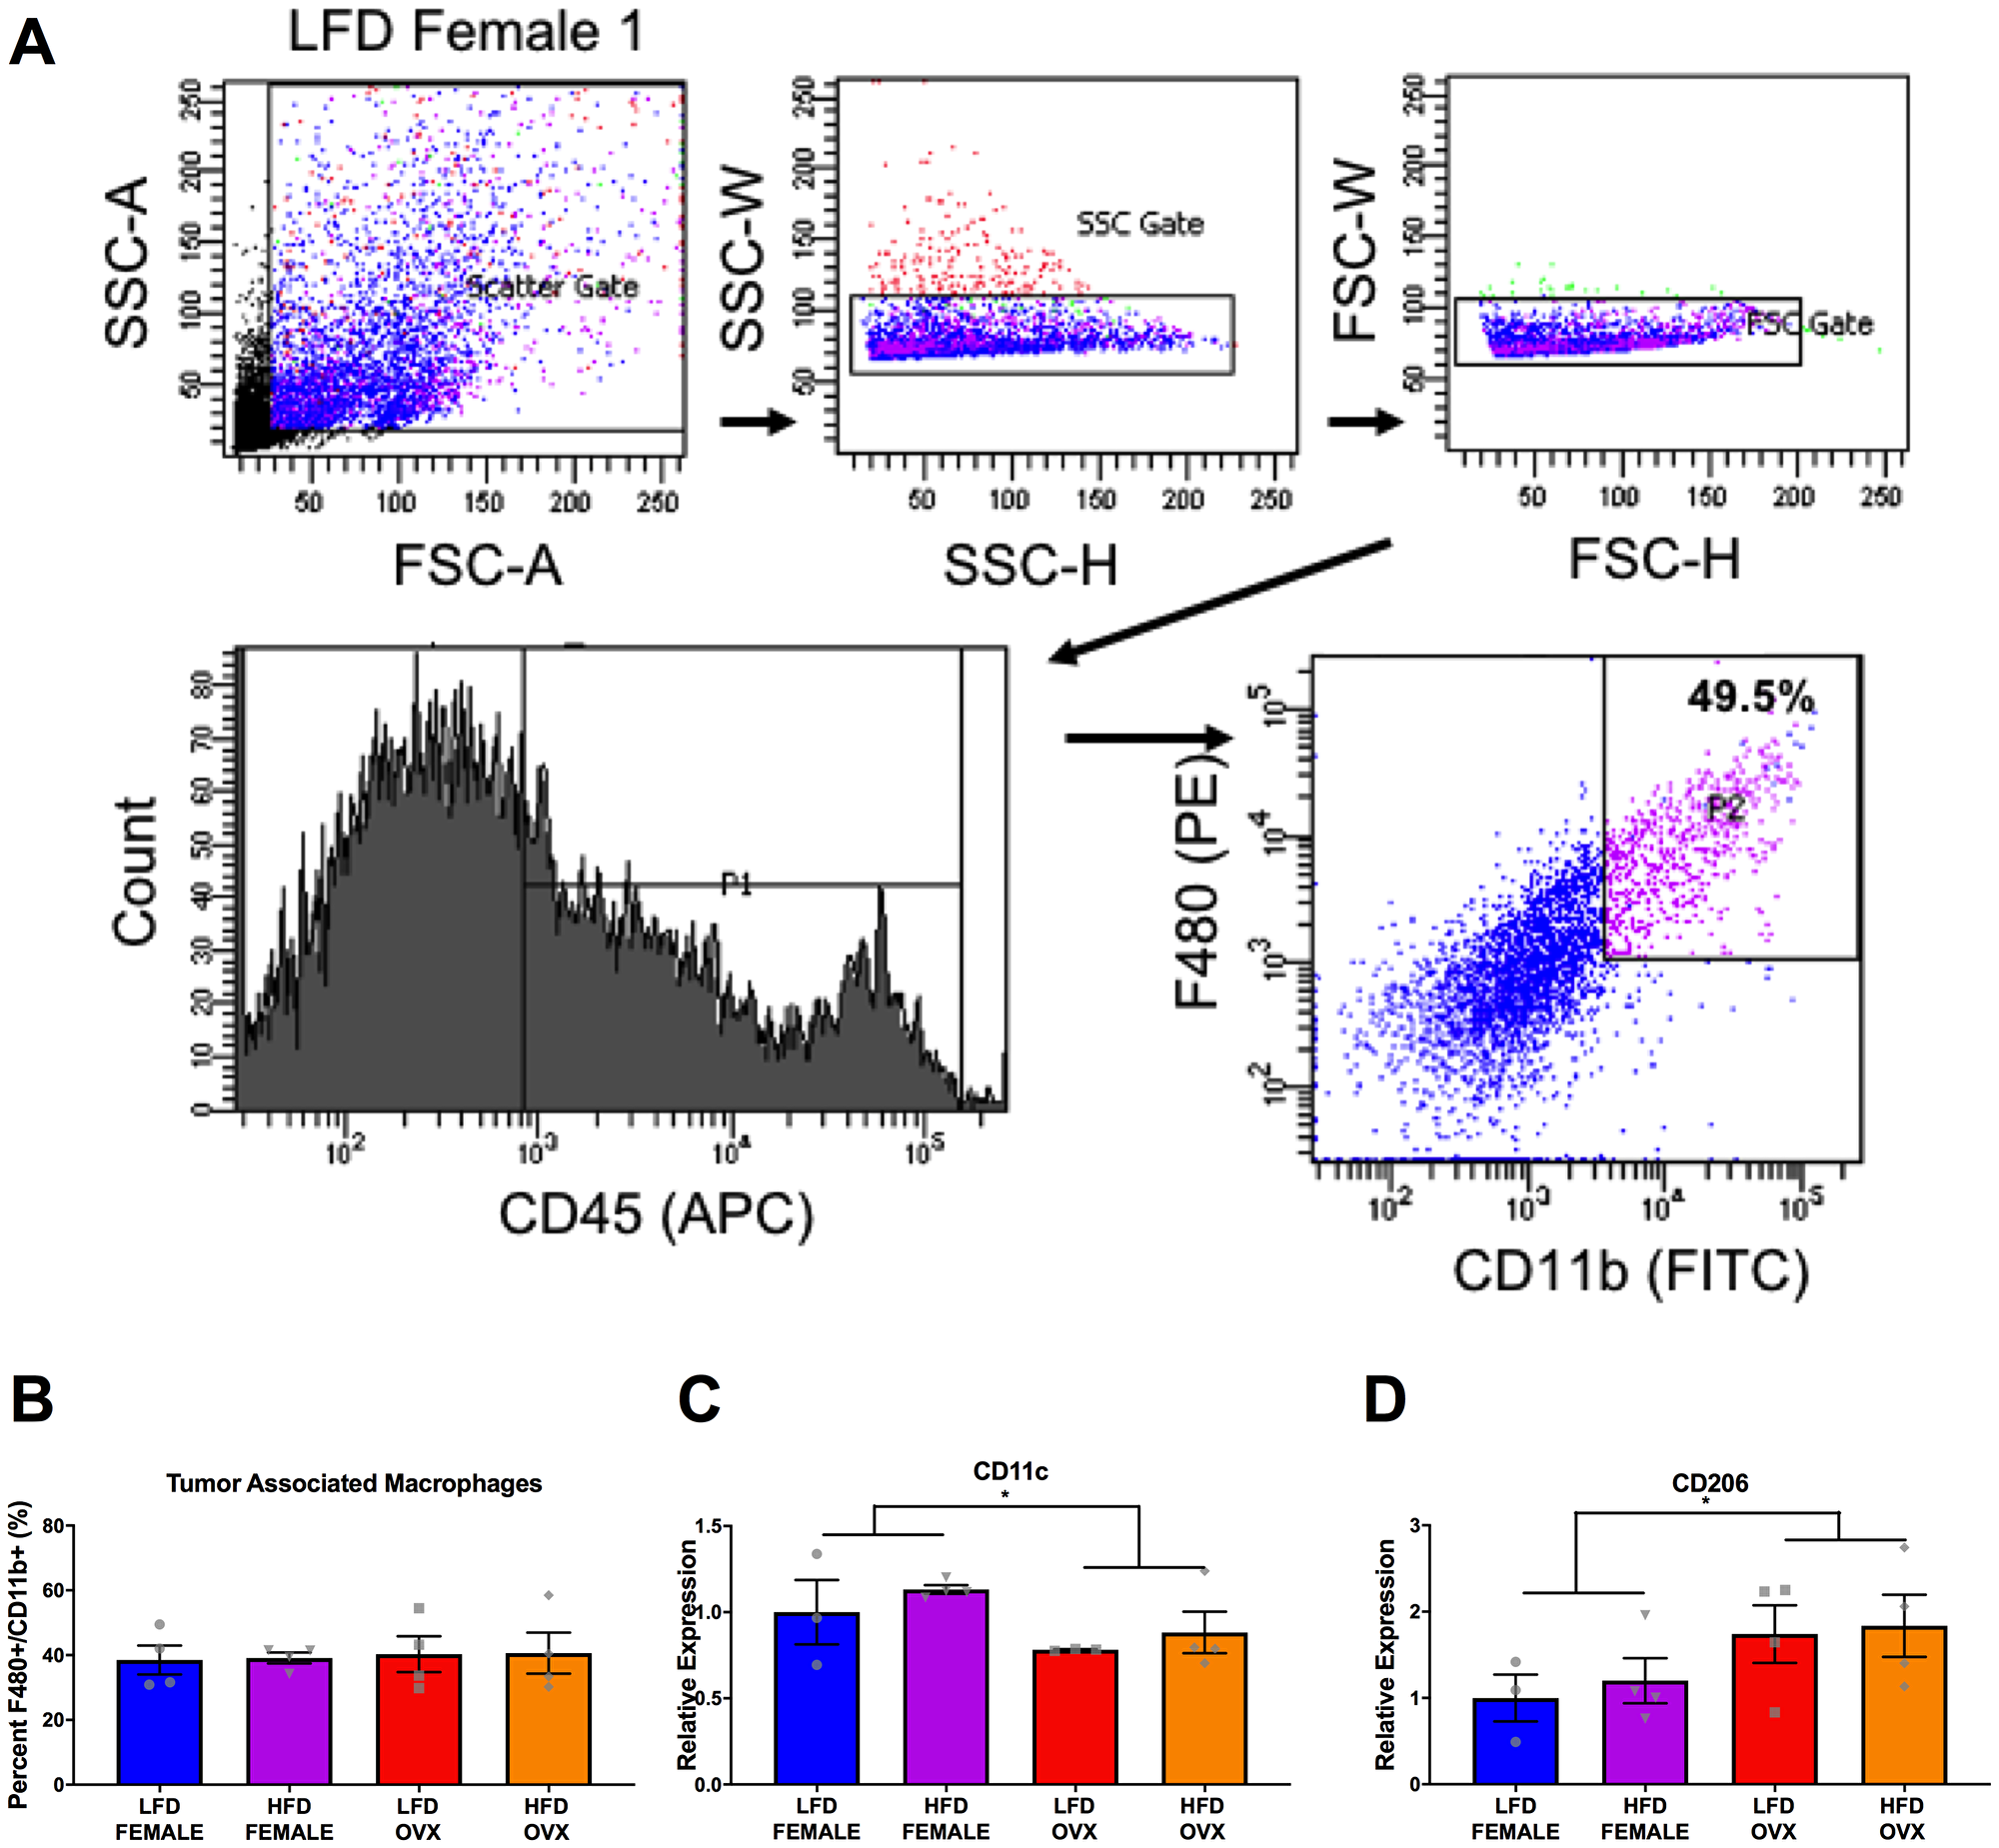 Differential tumor-associated macrophage phenotype in female and OVX mice.